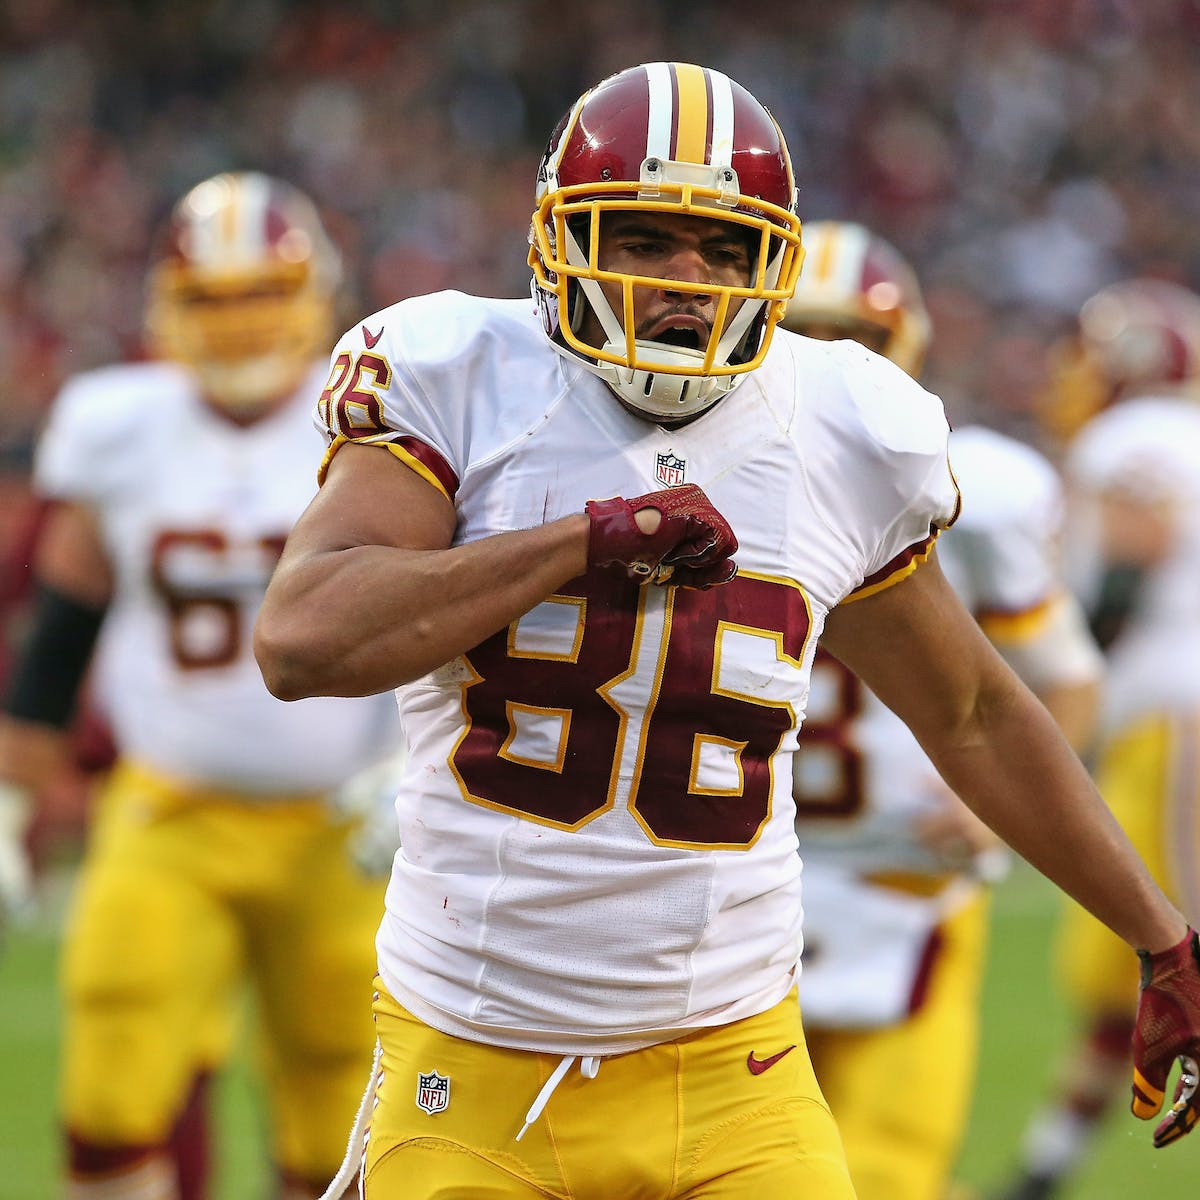 separation shoes 0b288 34522 What Happens if Jordan Reed Gets Another Concussion? | Inverse